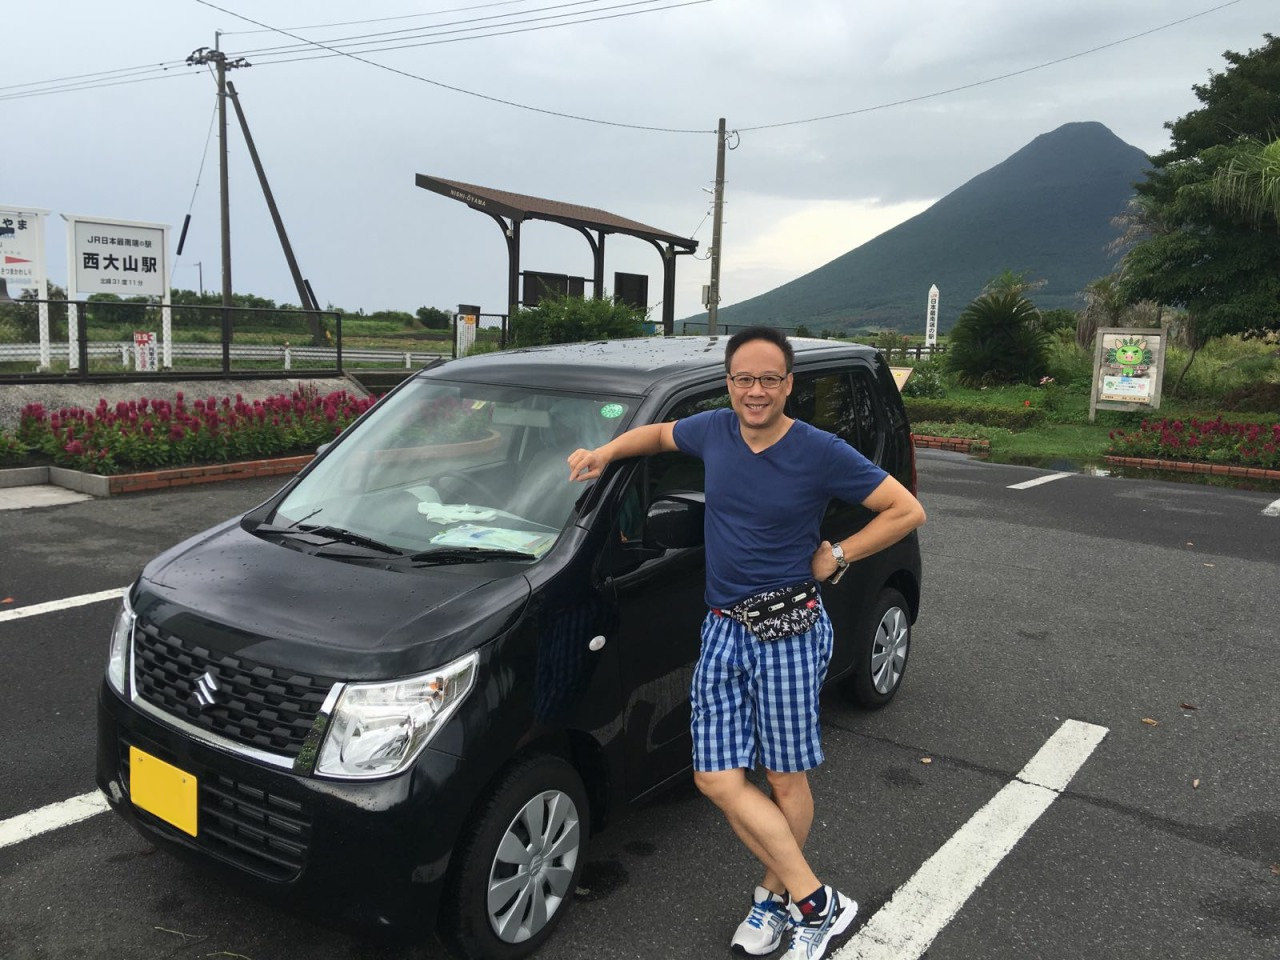 Rent a small car in Kagoshima is very convenient to go special place, such this Southest JR station